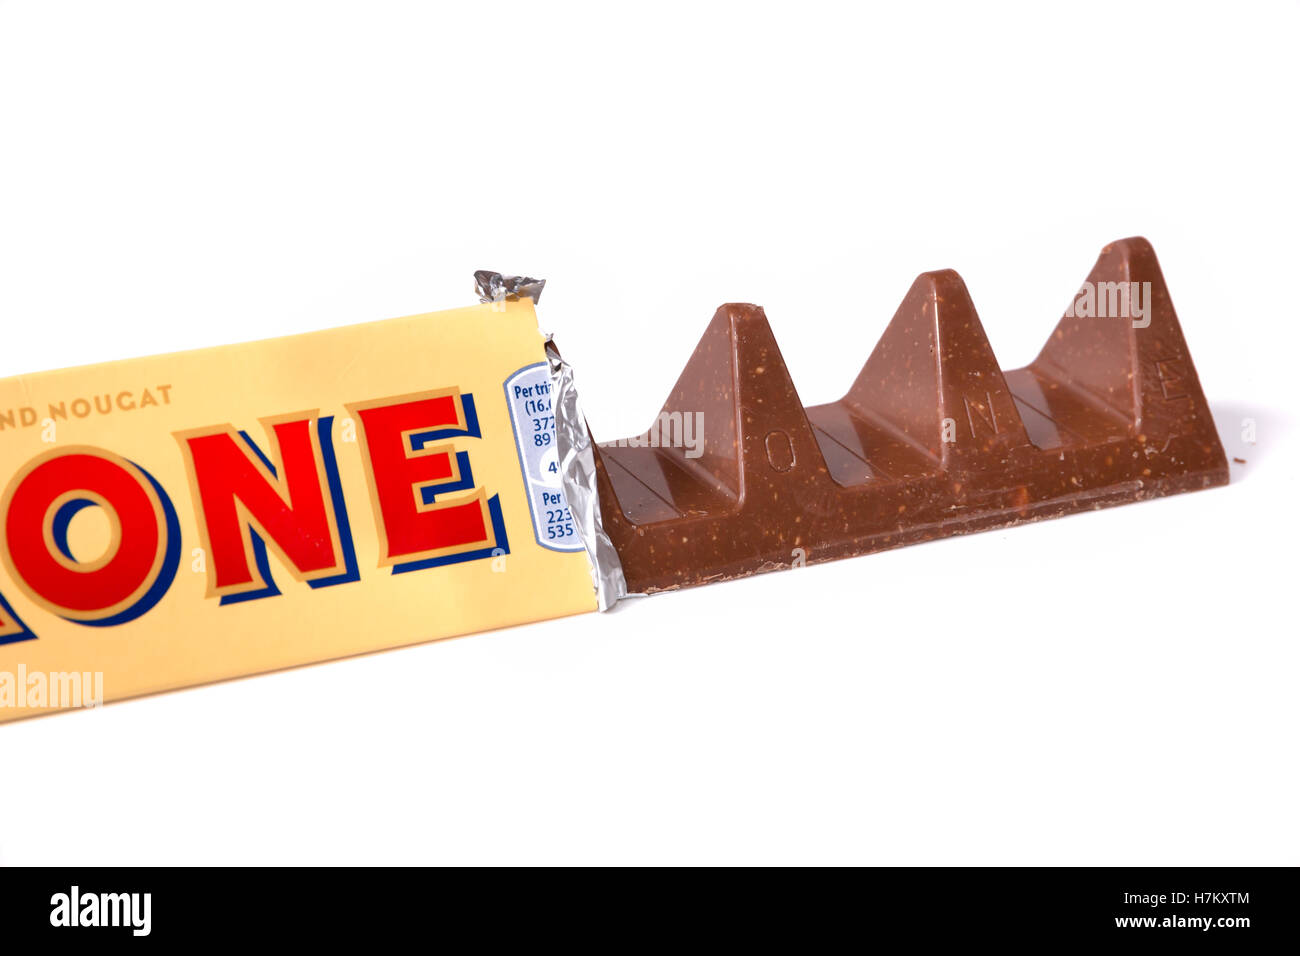 A close up of the wider gaps between pieces of a 150g Toblerone. - Stock Image